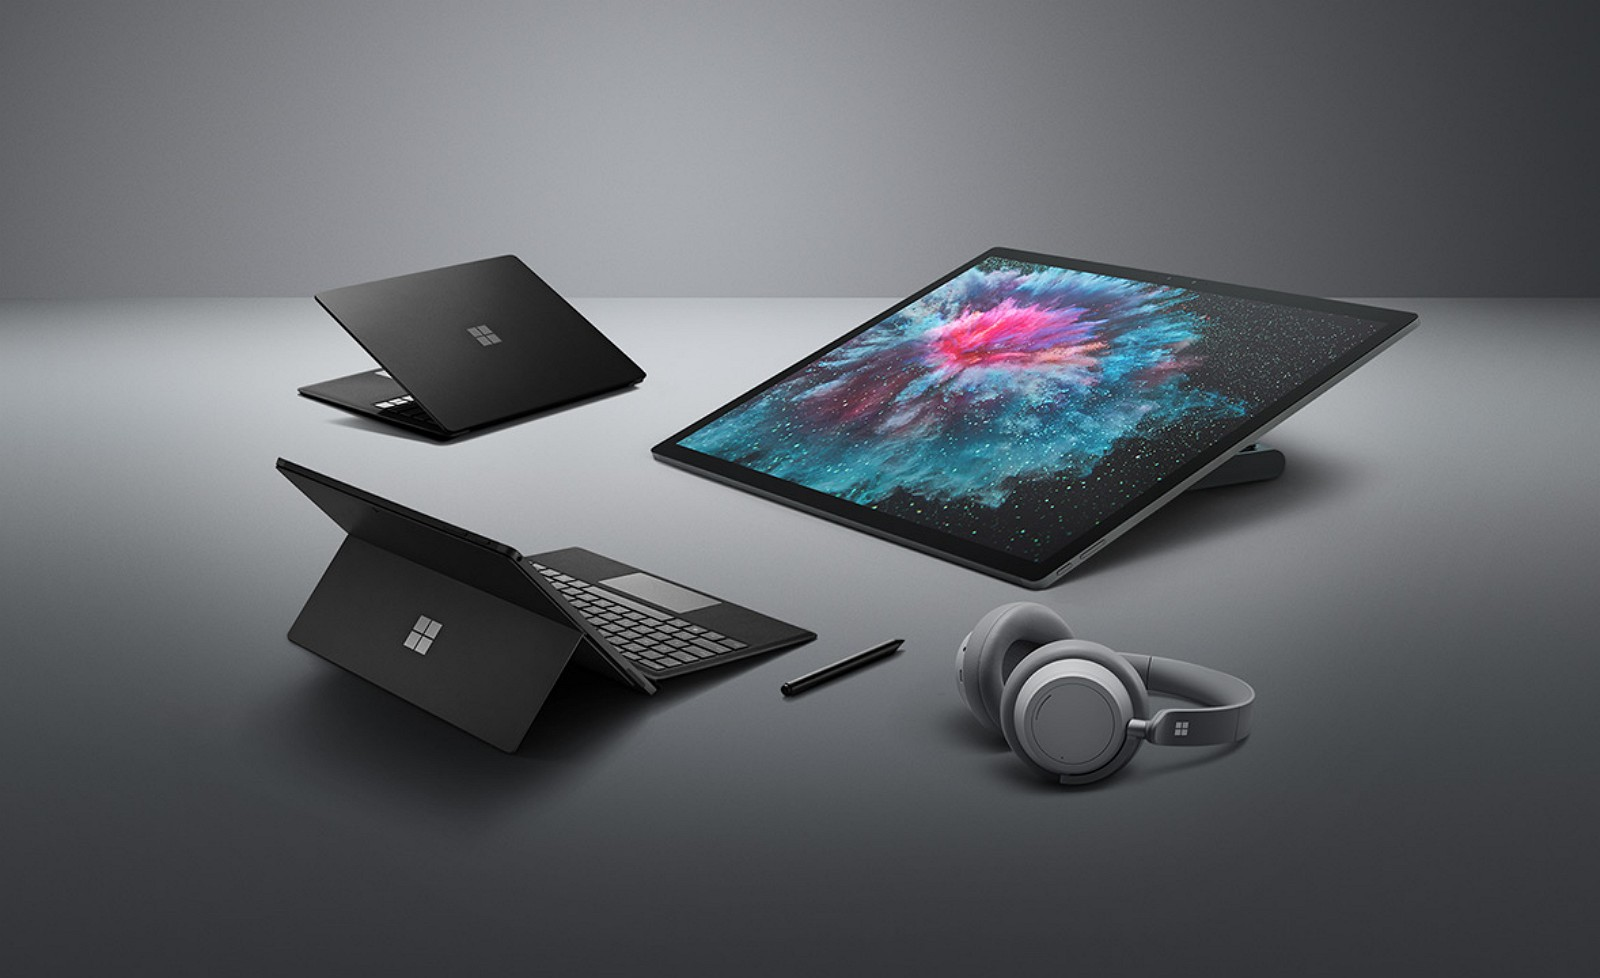 Surface devices October 2018 Microsoft event